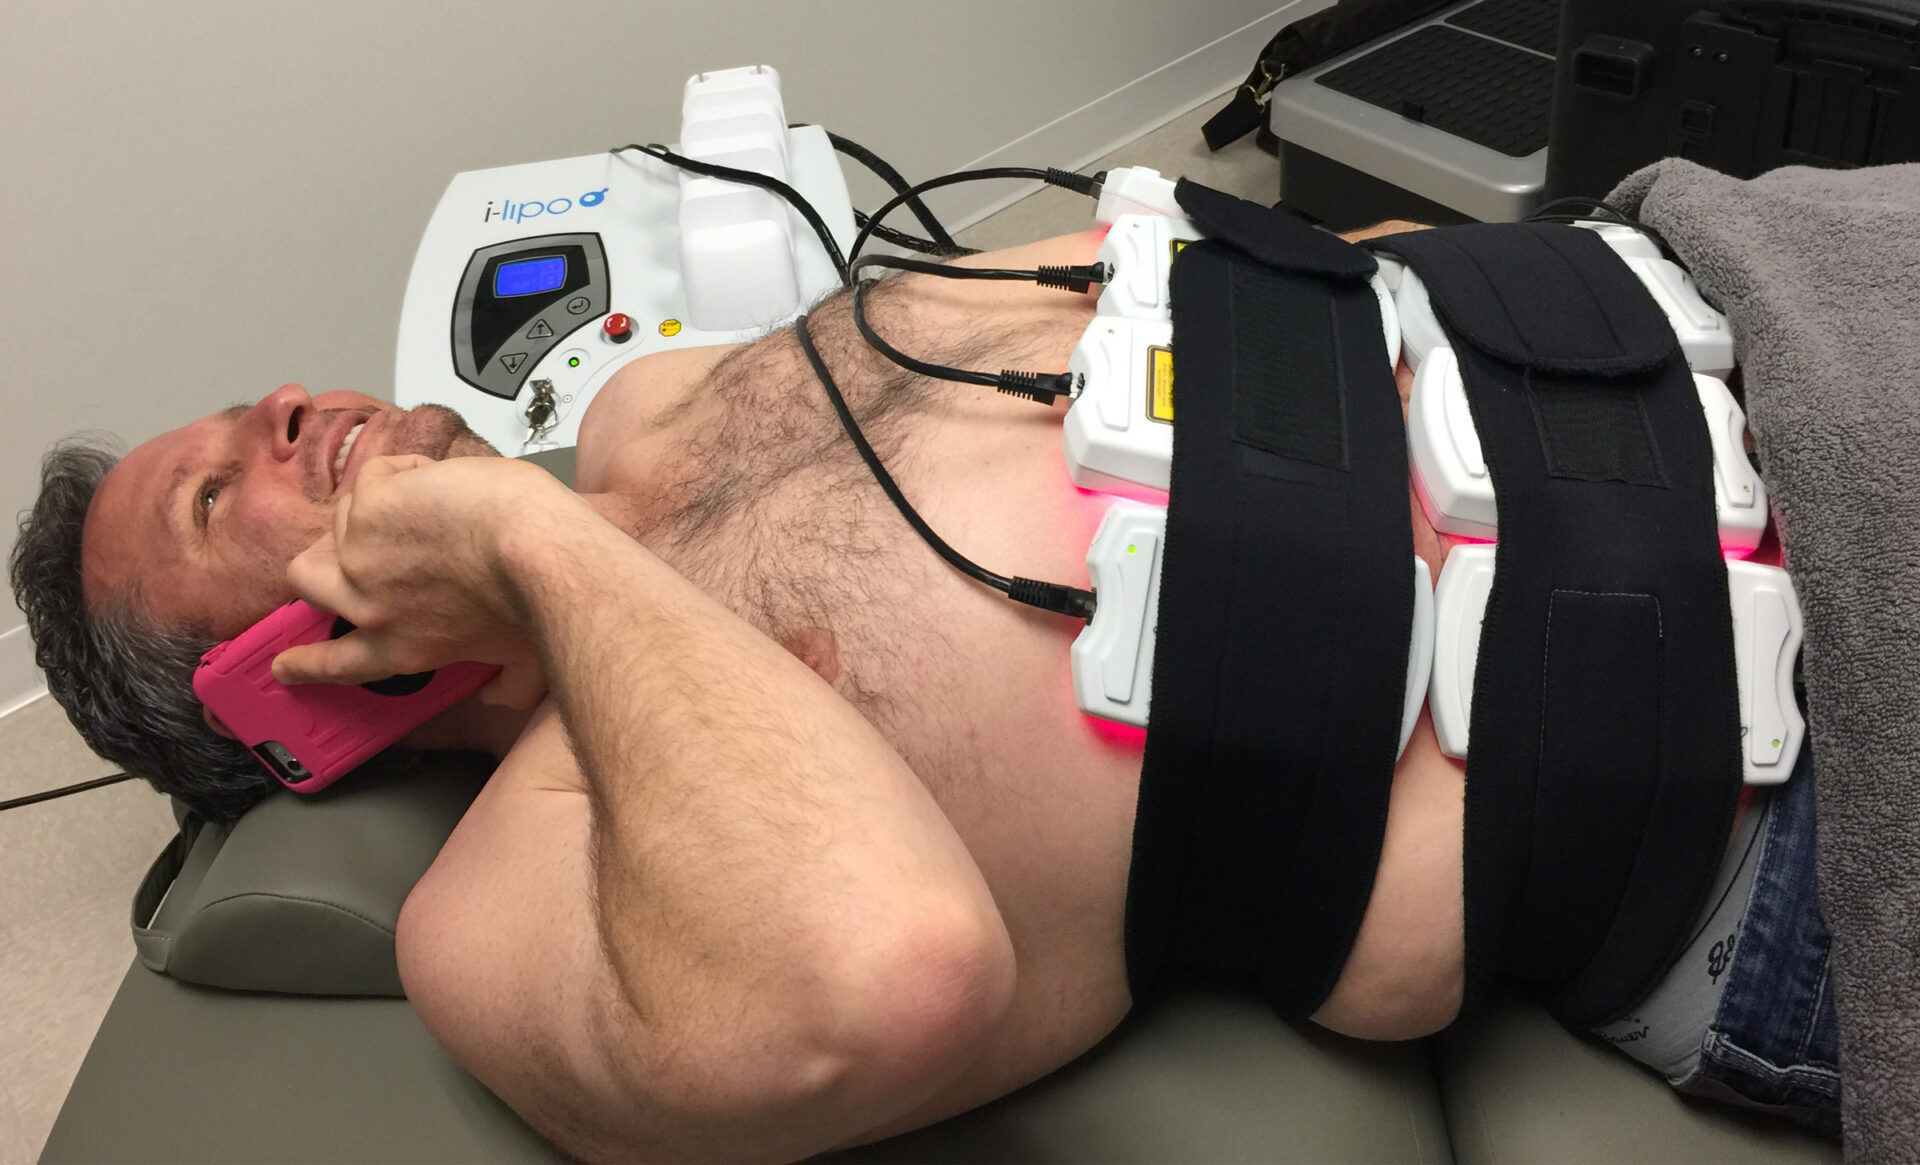 NY Health & Wellness First in Westchester to Introduce Fat/Cellulite Reduction Machine